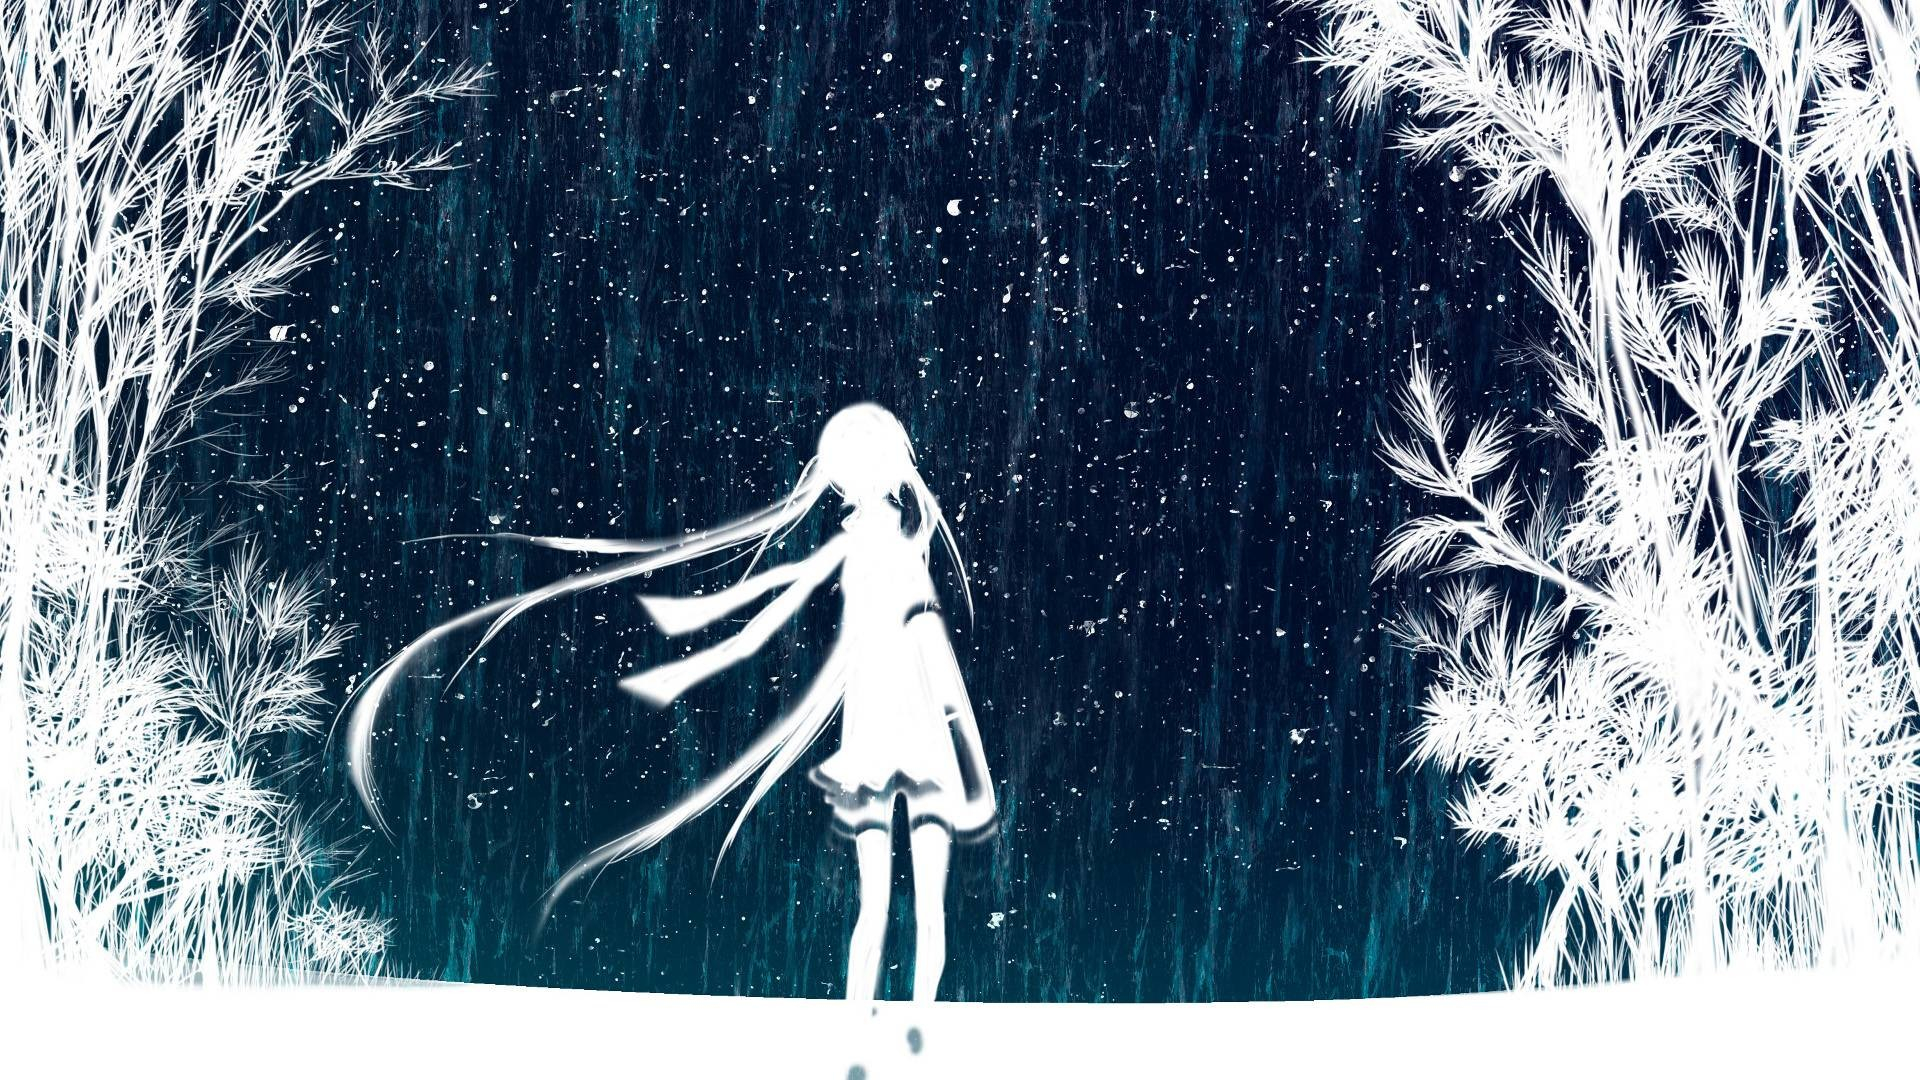 Res: 1920x1080, snow anime wallpapers hd download free hd wallpapers high definition  amazing cool desktop wallpapers for windows mac tablet download 1920×1080 Wallpaper  HD